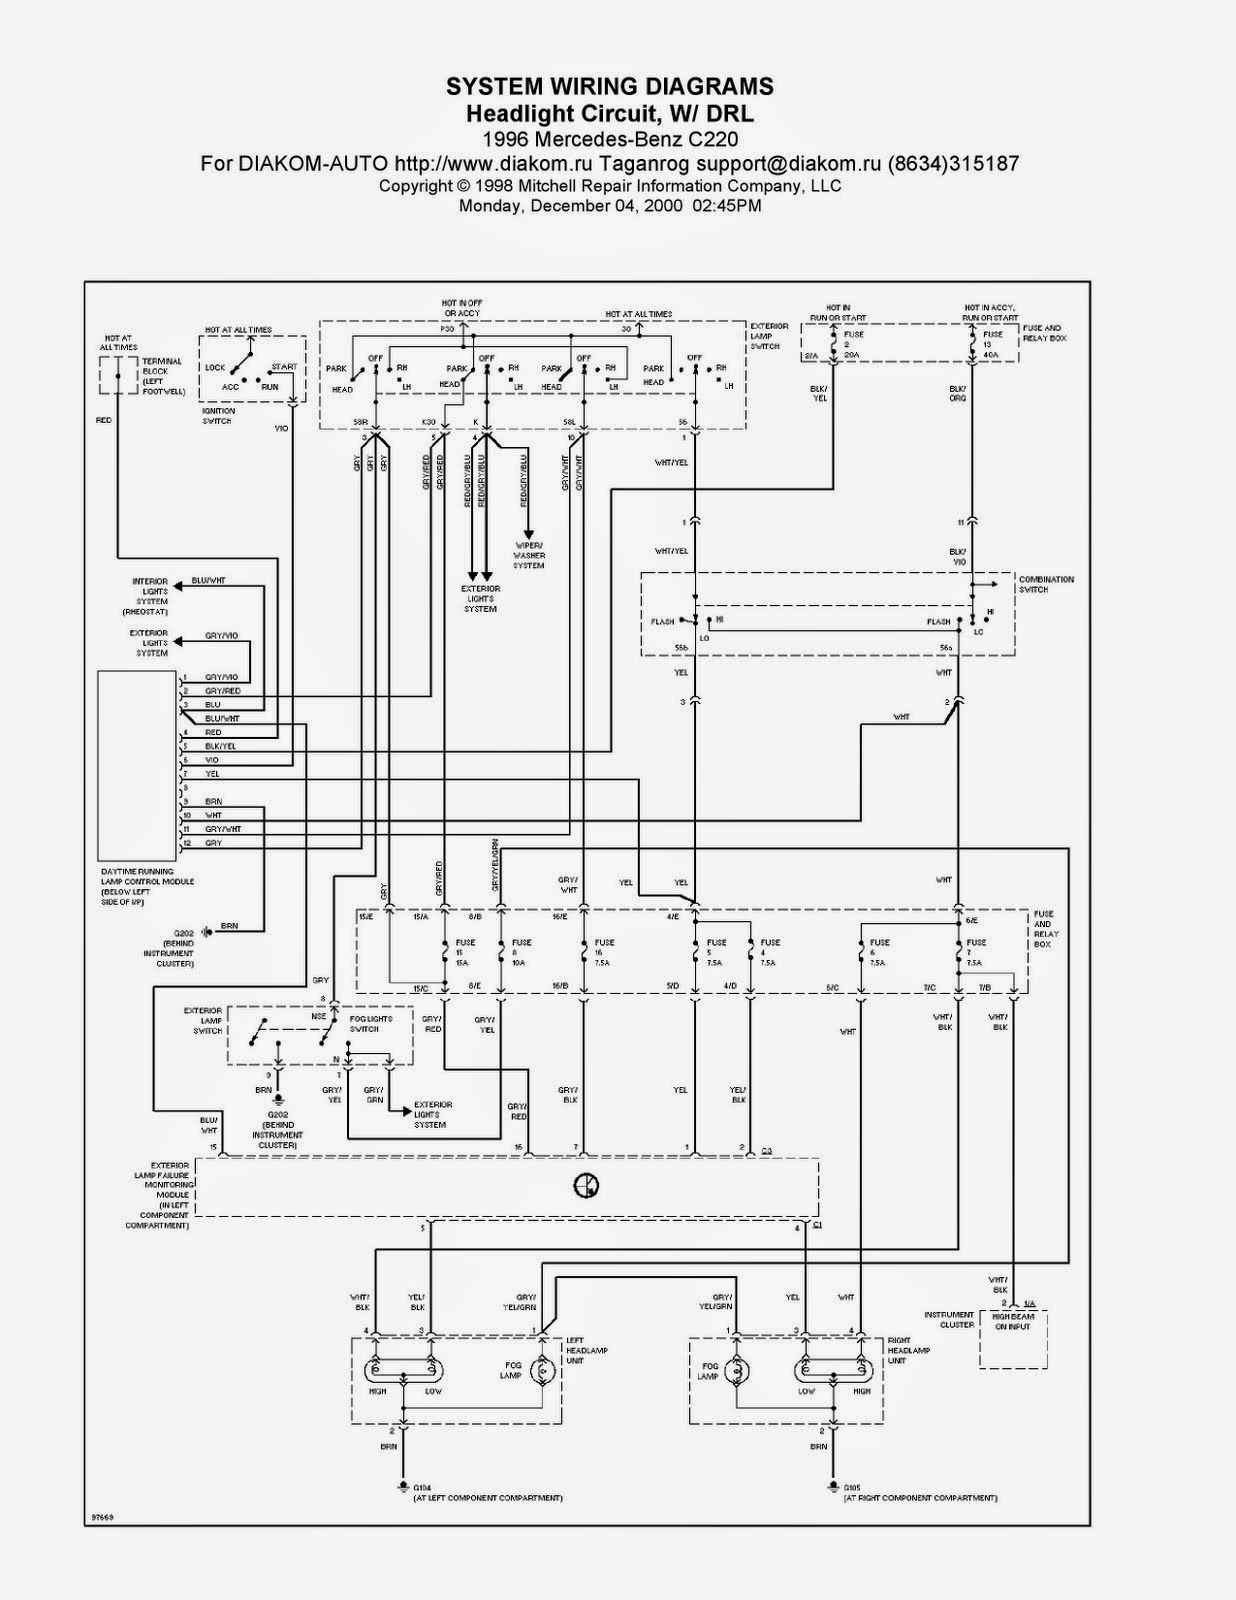 Ml Wiring Diagram Auto Electrical Opel Frontera For 110 Chinese Atv Cc